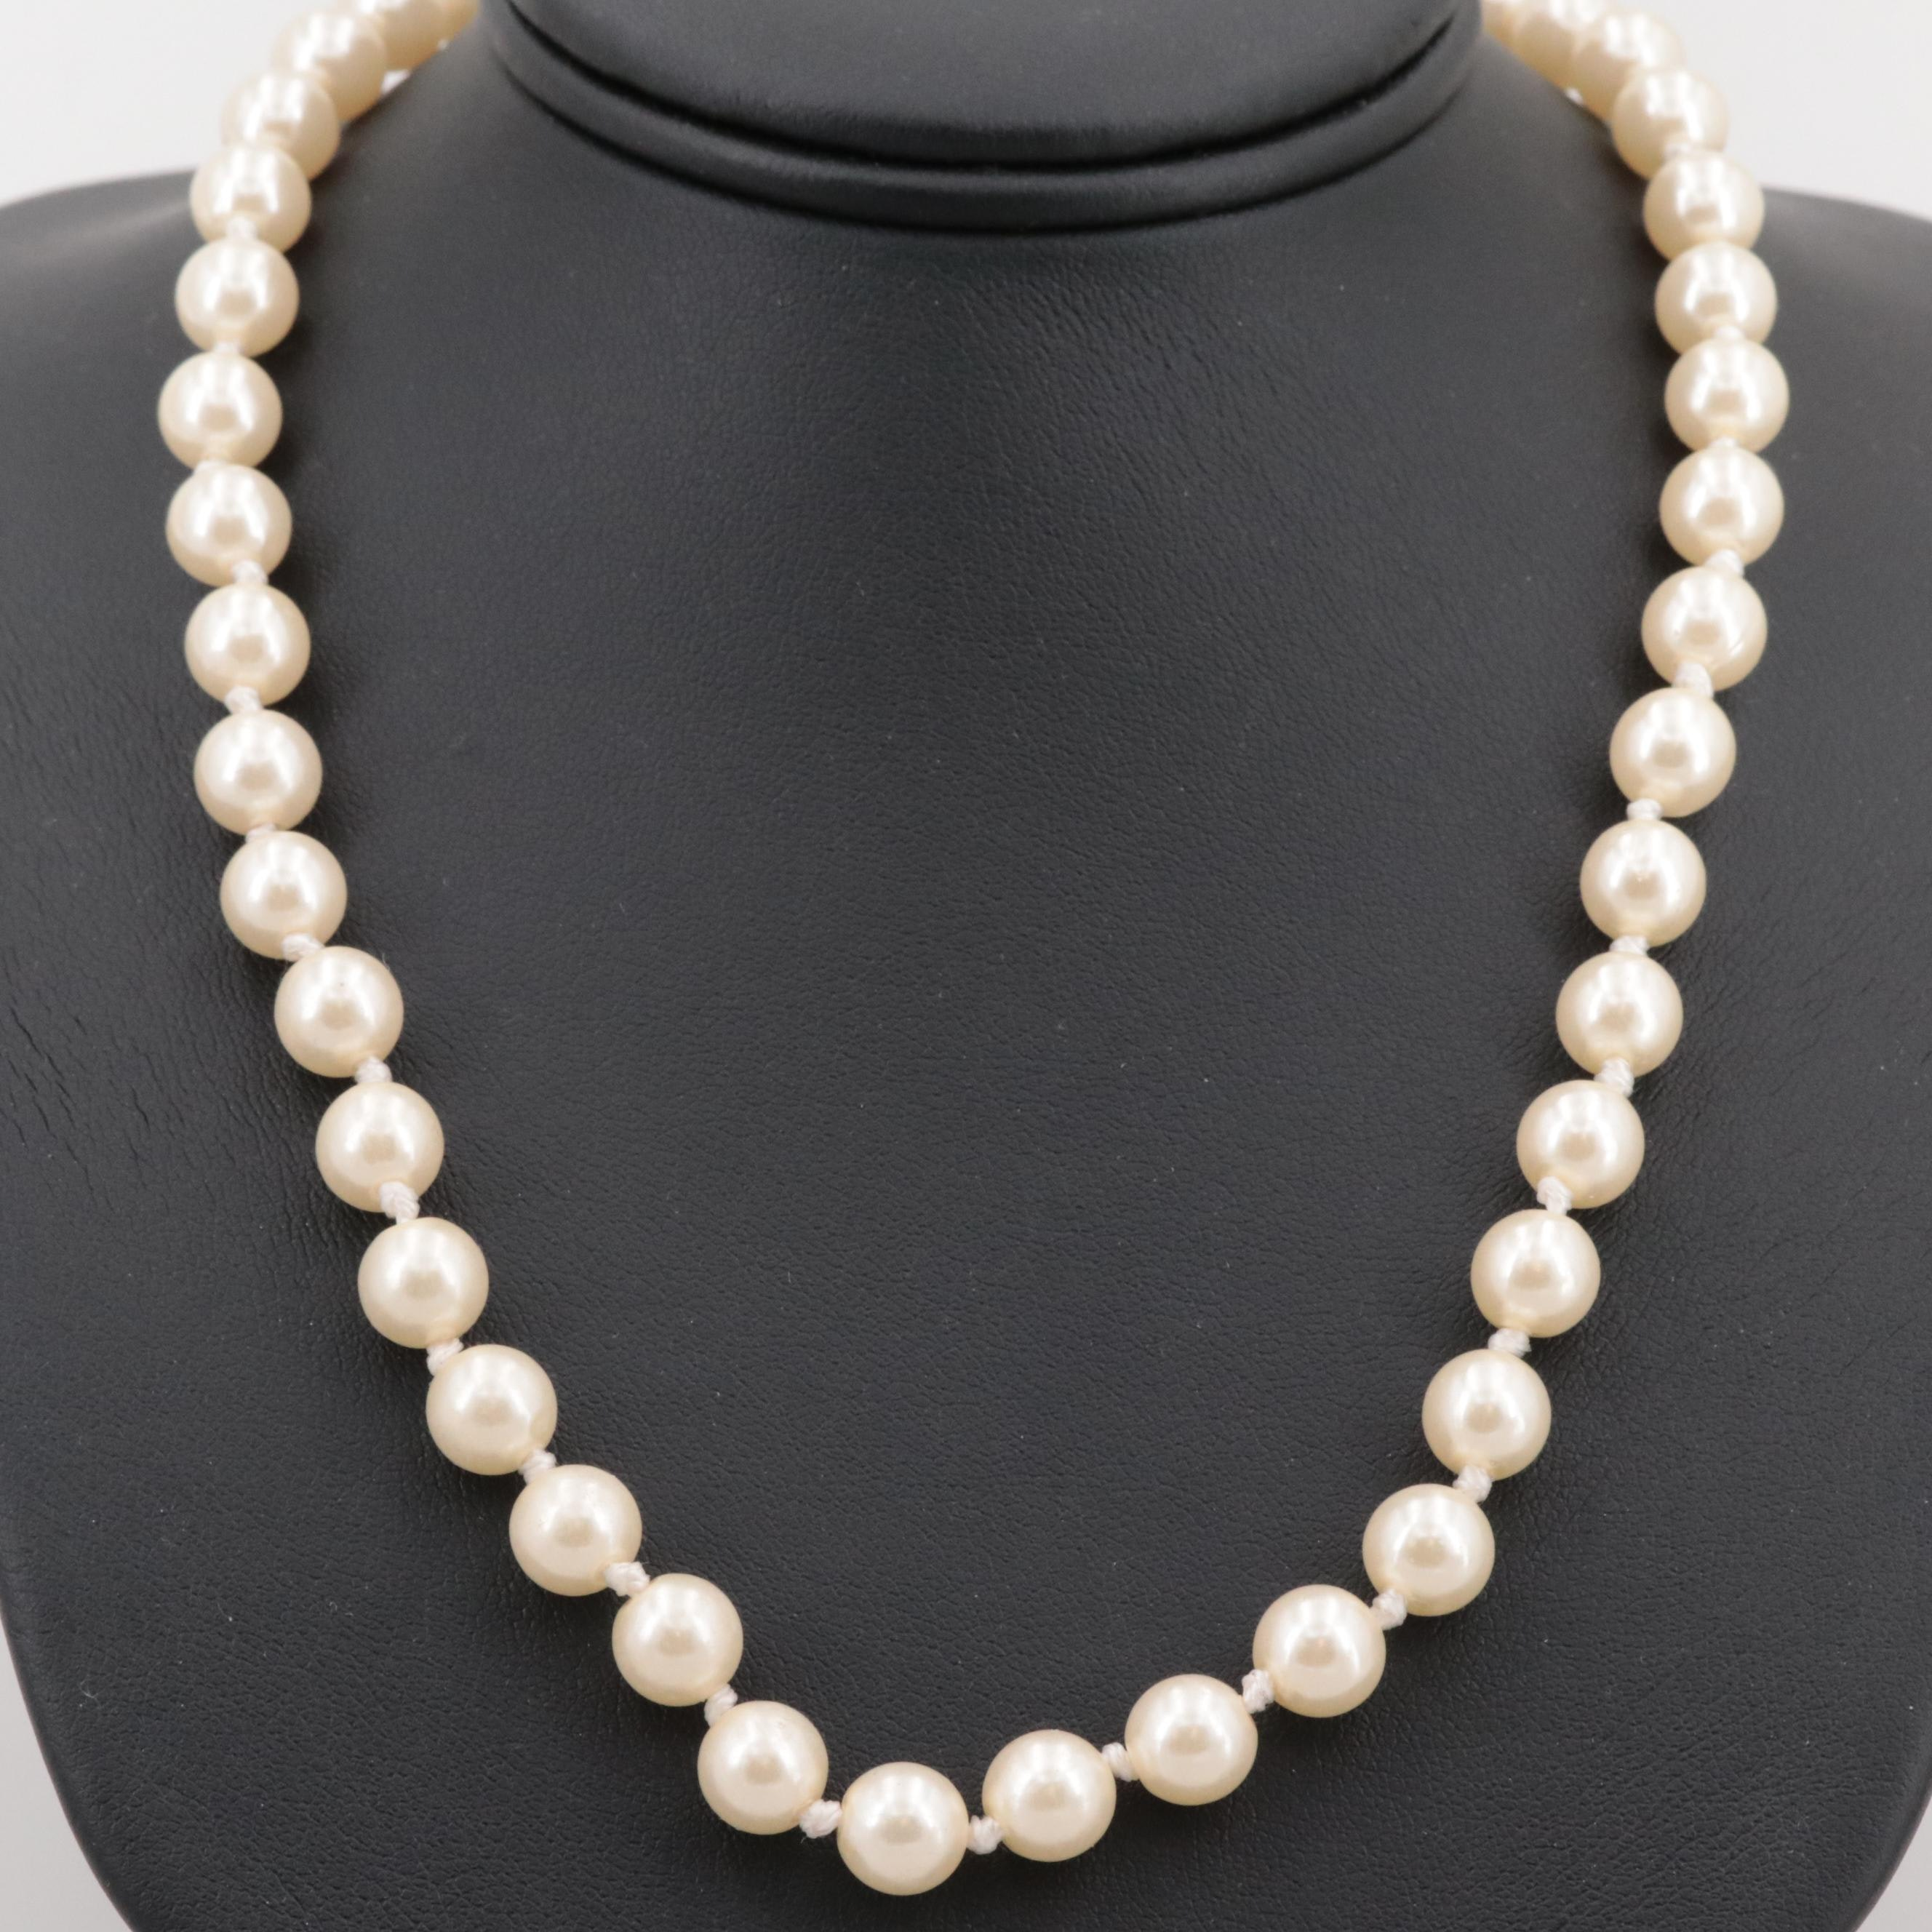 Gold Tone Imitation Pearl Necklace